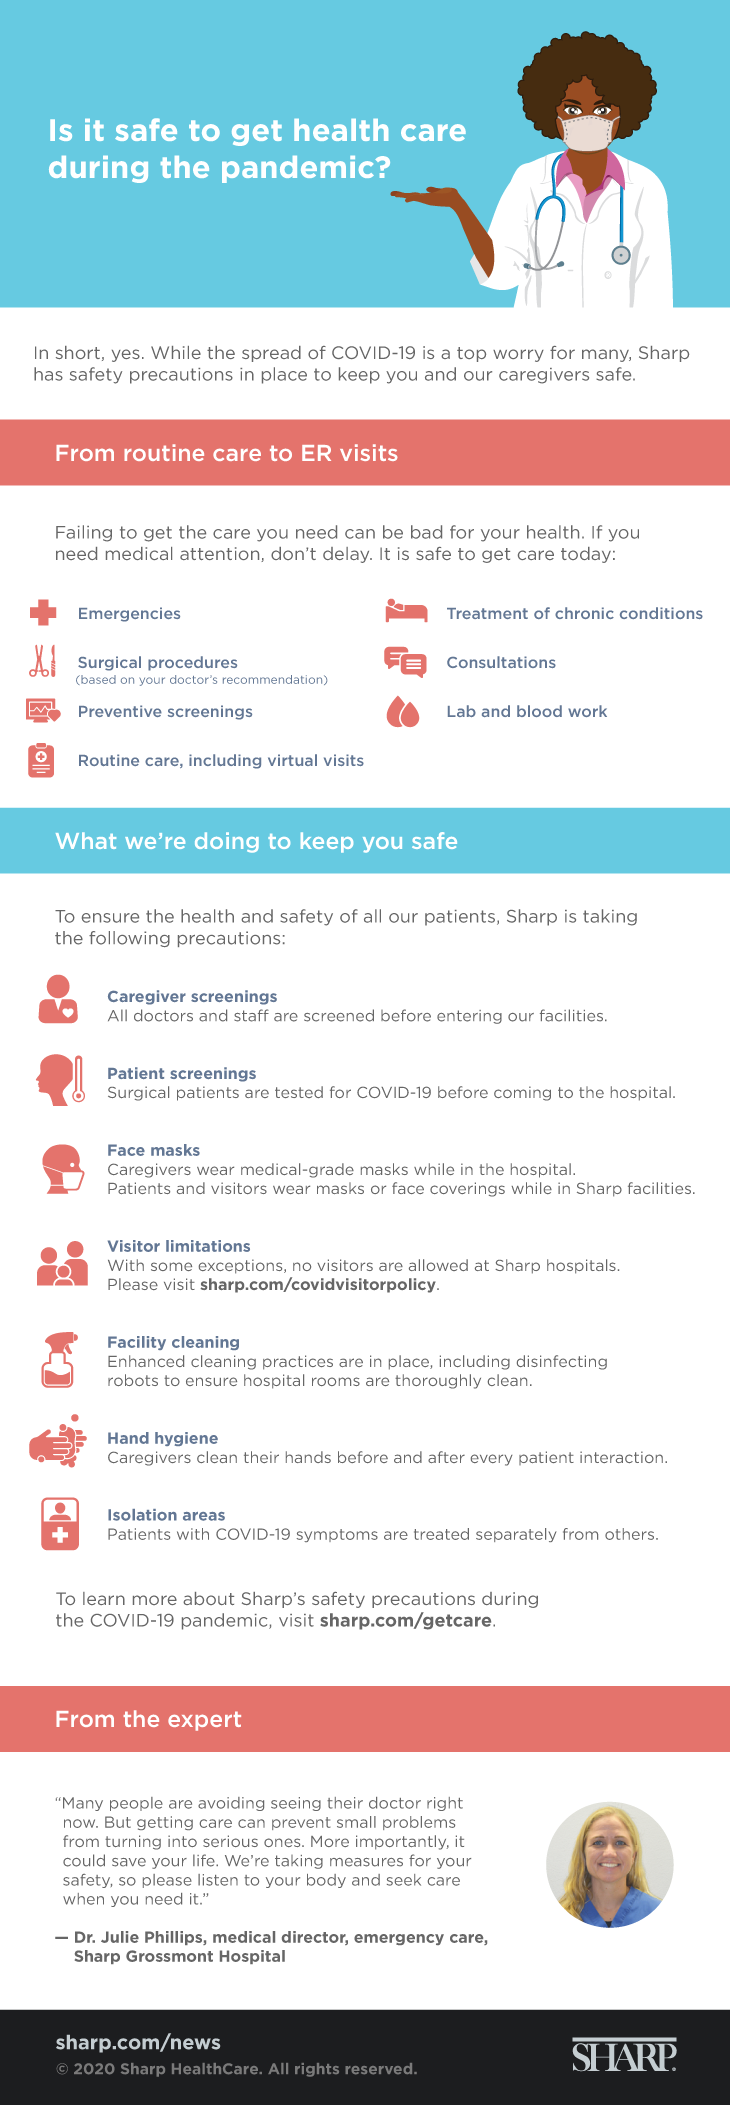 Is it safe to get health care during the pandemic? (Infographic) In short, yes. While the spread of COVID-19 is a top worry for many, Sharp has safety precautions in place to keep you and our caregivers safe. From routine care to ER visits. Failing to get the care you need can be bad for your health. If you need medical attention, don't delay. It is safe to get care today: Emergencies, surgical procedures (based on your doctor's recommendation), preventative screening, routine care (including virtual visits), treatment of chronic conditions, consultations, lab and blood work. What we're doing to keep you safe. To ensure the health and safety of all our patients, Sharp is taking the following precautions: Caregiver screenings - All doctors and staff are screened before entering our facilities. Patient screenings - Surgical patients are tested for COVID-19 before coming to the hospital. Face masks - Caregivers wear medical-grade masks while in the hospital. Patients and visitors wear masks or face coverings while in Sharp facilities. Visitor limitations - With some exceptions, no visitors are allowed at Sharp hospitals. Please visit sharp.com/covidvisitorpolicy. Facility cleaning - Enhanced cleaning practices are in place, including disinfecting robots to ensure hospital rooms are thoroughly clean. Hand hygiene - Caregivers clean their hands before and after every patient interaction. Isolation areas - Patients with COVID-19 symptoms are treated separately from others. To learn more about Sharp's safety precautions during the COVID-19 pandemic, visit sharp.com/getcare. From the expert: Many people are avoiding seeing their doctor right now. But getting care can prevent small problems from turning into serious ones. More importantly, it could save your life. We're taking measures for your safely, so please listen to your body and seek care when you need it. - Dr. Julie Phillips, medical director, emergency care, Sharp Grossmont Hospital. Sharp.com/news. 2020 Sharp HealthCare. All rights reserved.